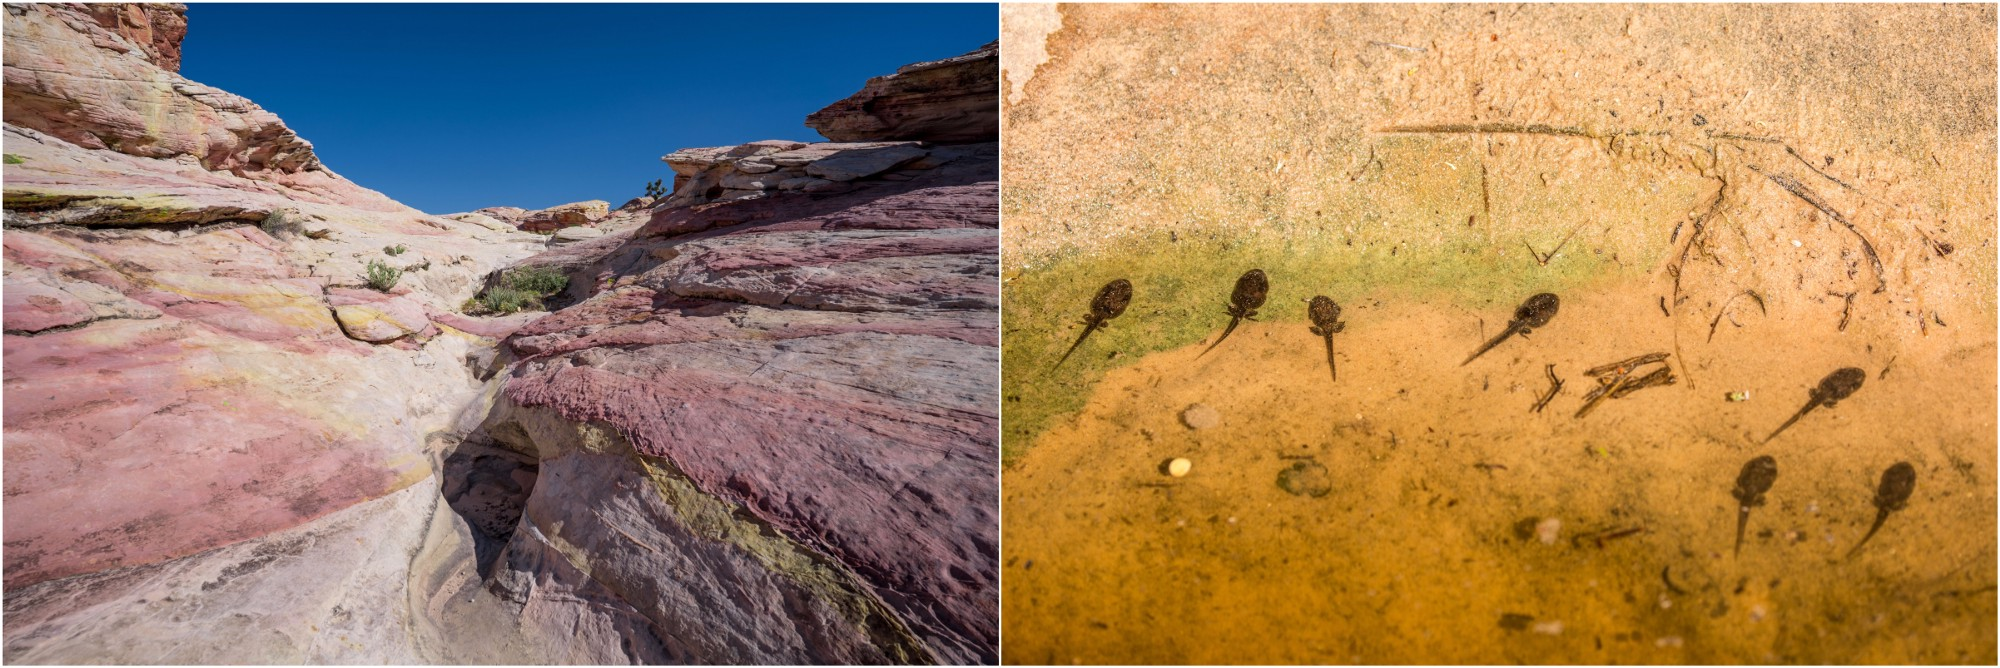 """- Left: the colors of these rocks are painted by the interaction between water and minerals. The small pools, called """"tinajas"""", temporarily hold water which brings life to this dry environment. Right: Tadpoles in one of the tinajas that still had water."""